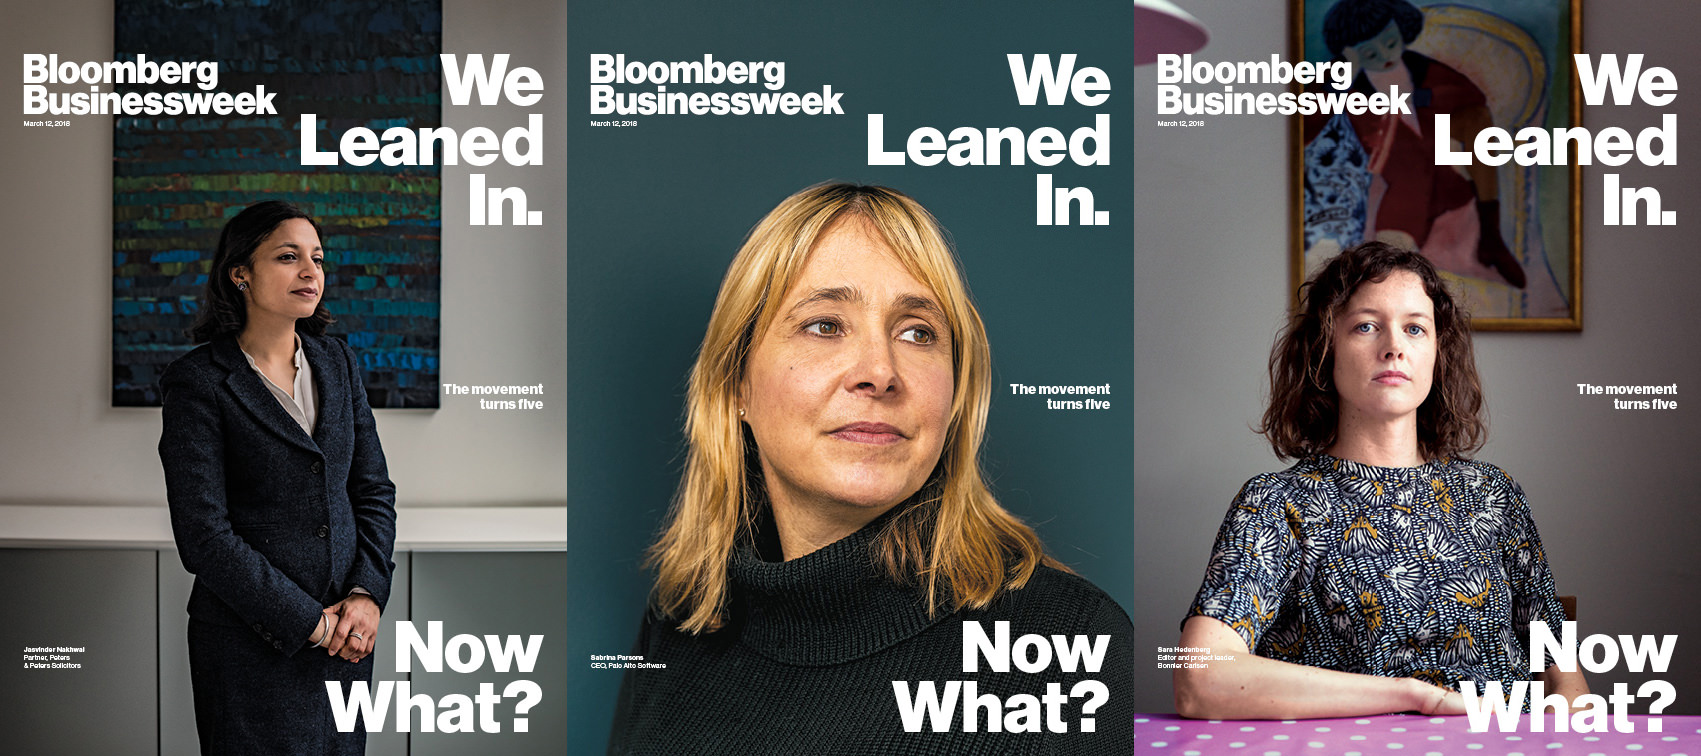 Bloomberg Businessweek covers